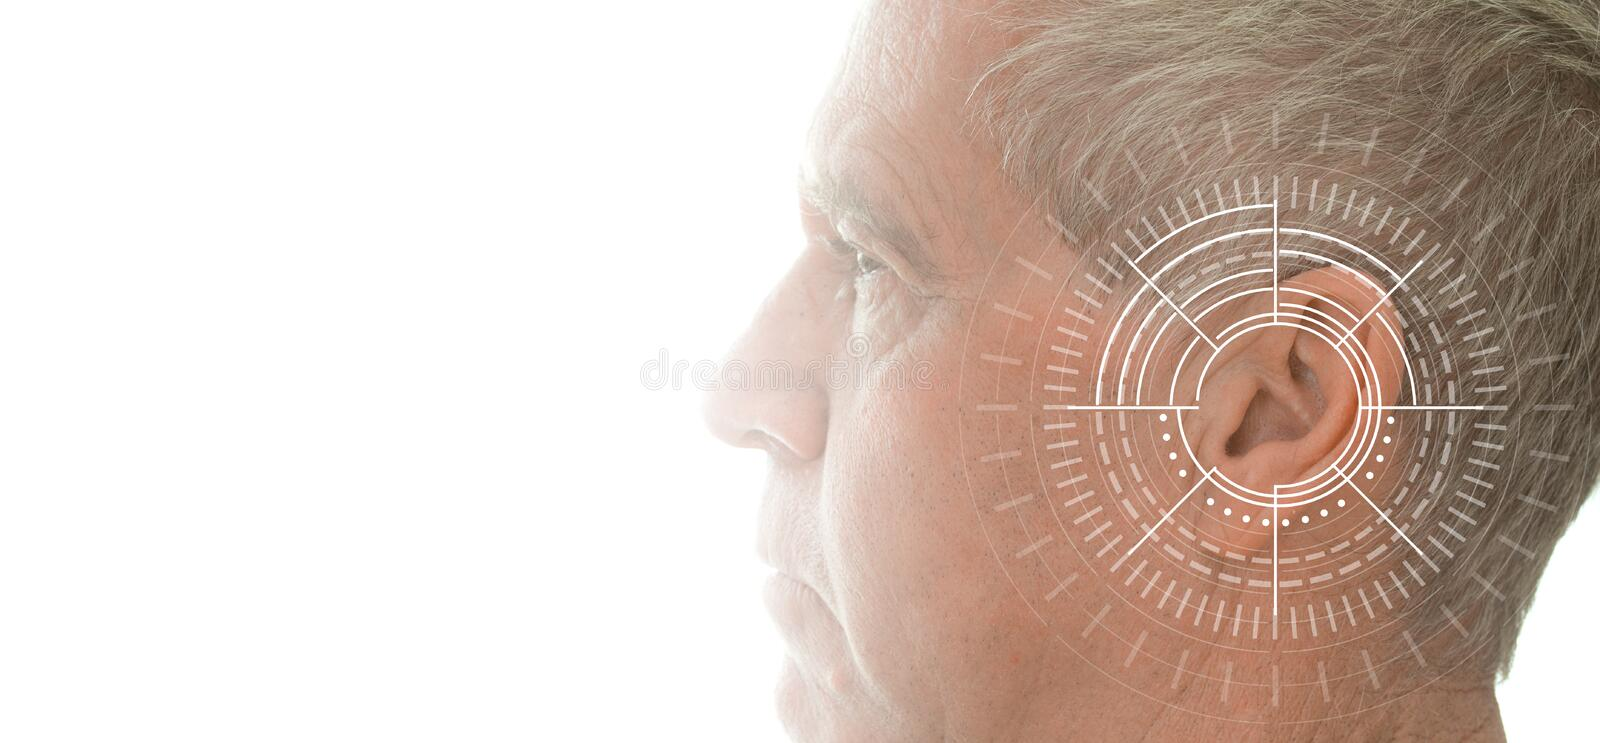 Hearing test showing ear of senior man with sound waves simulation technology. Isolated on white banner stock photography